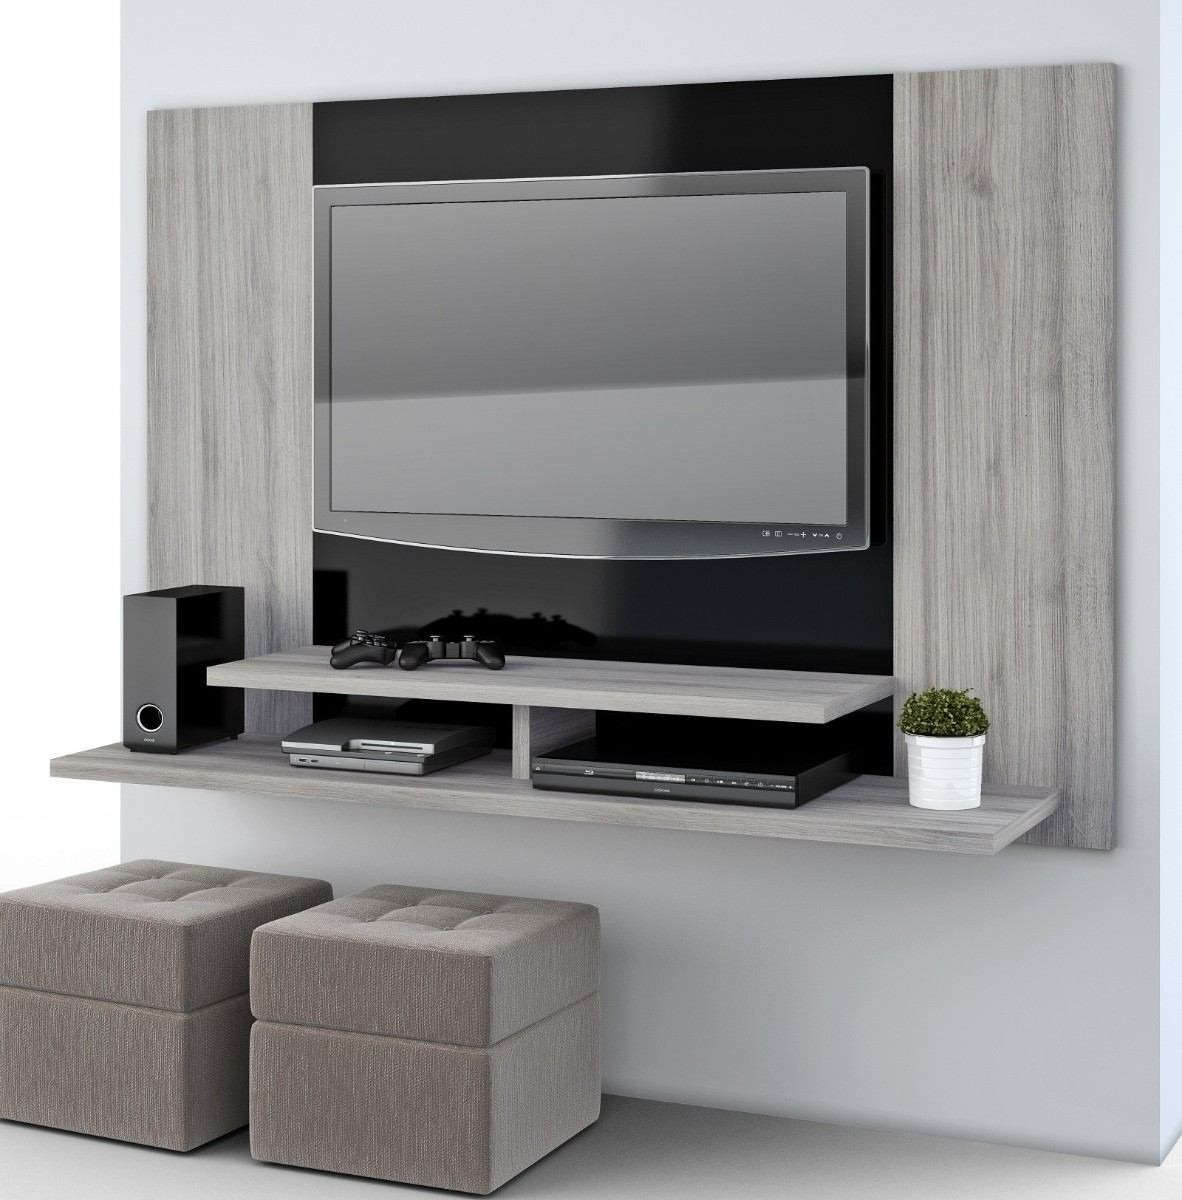 Mueble flotante para tv moderno ref manhatan for Muebles para tv en madera